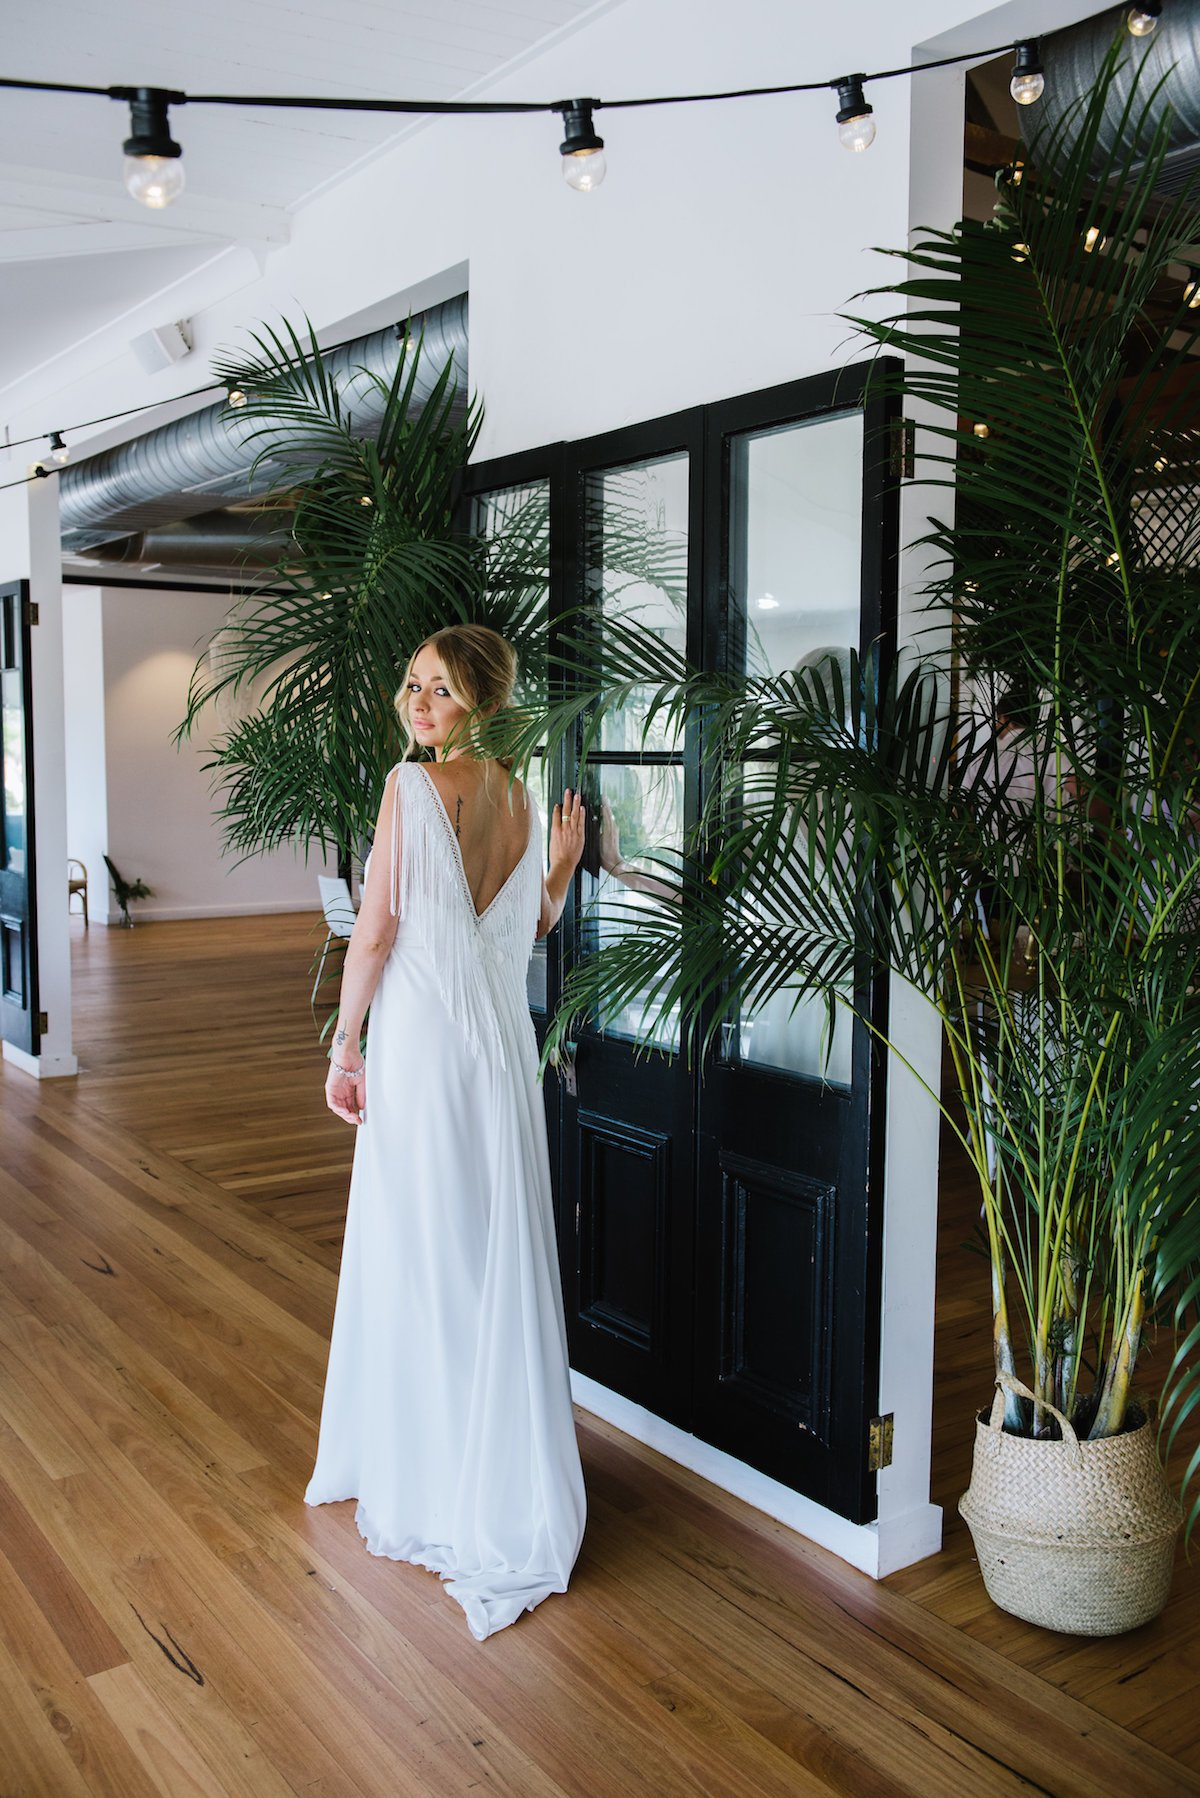 Behind the Scenes at Babalou, Kingscliff Wedding Venue (10)